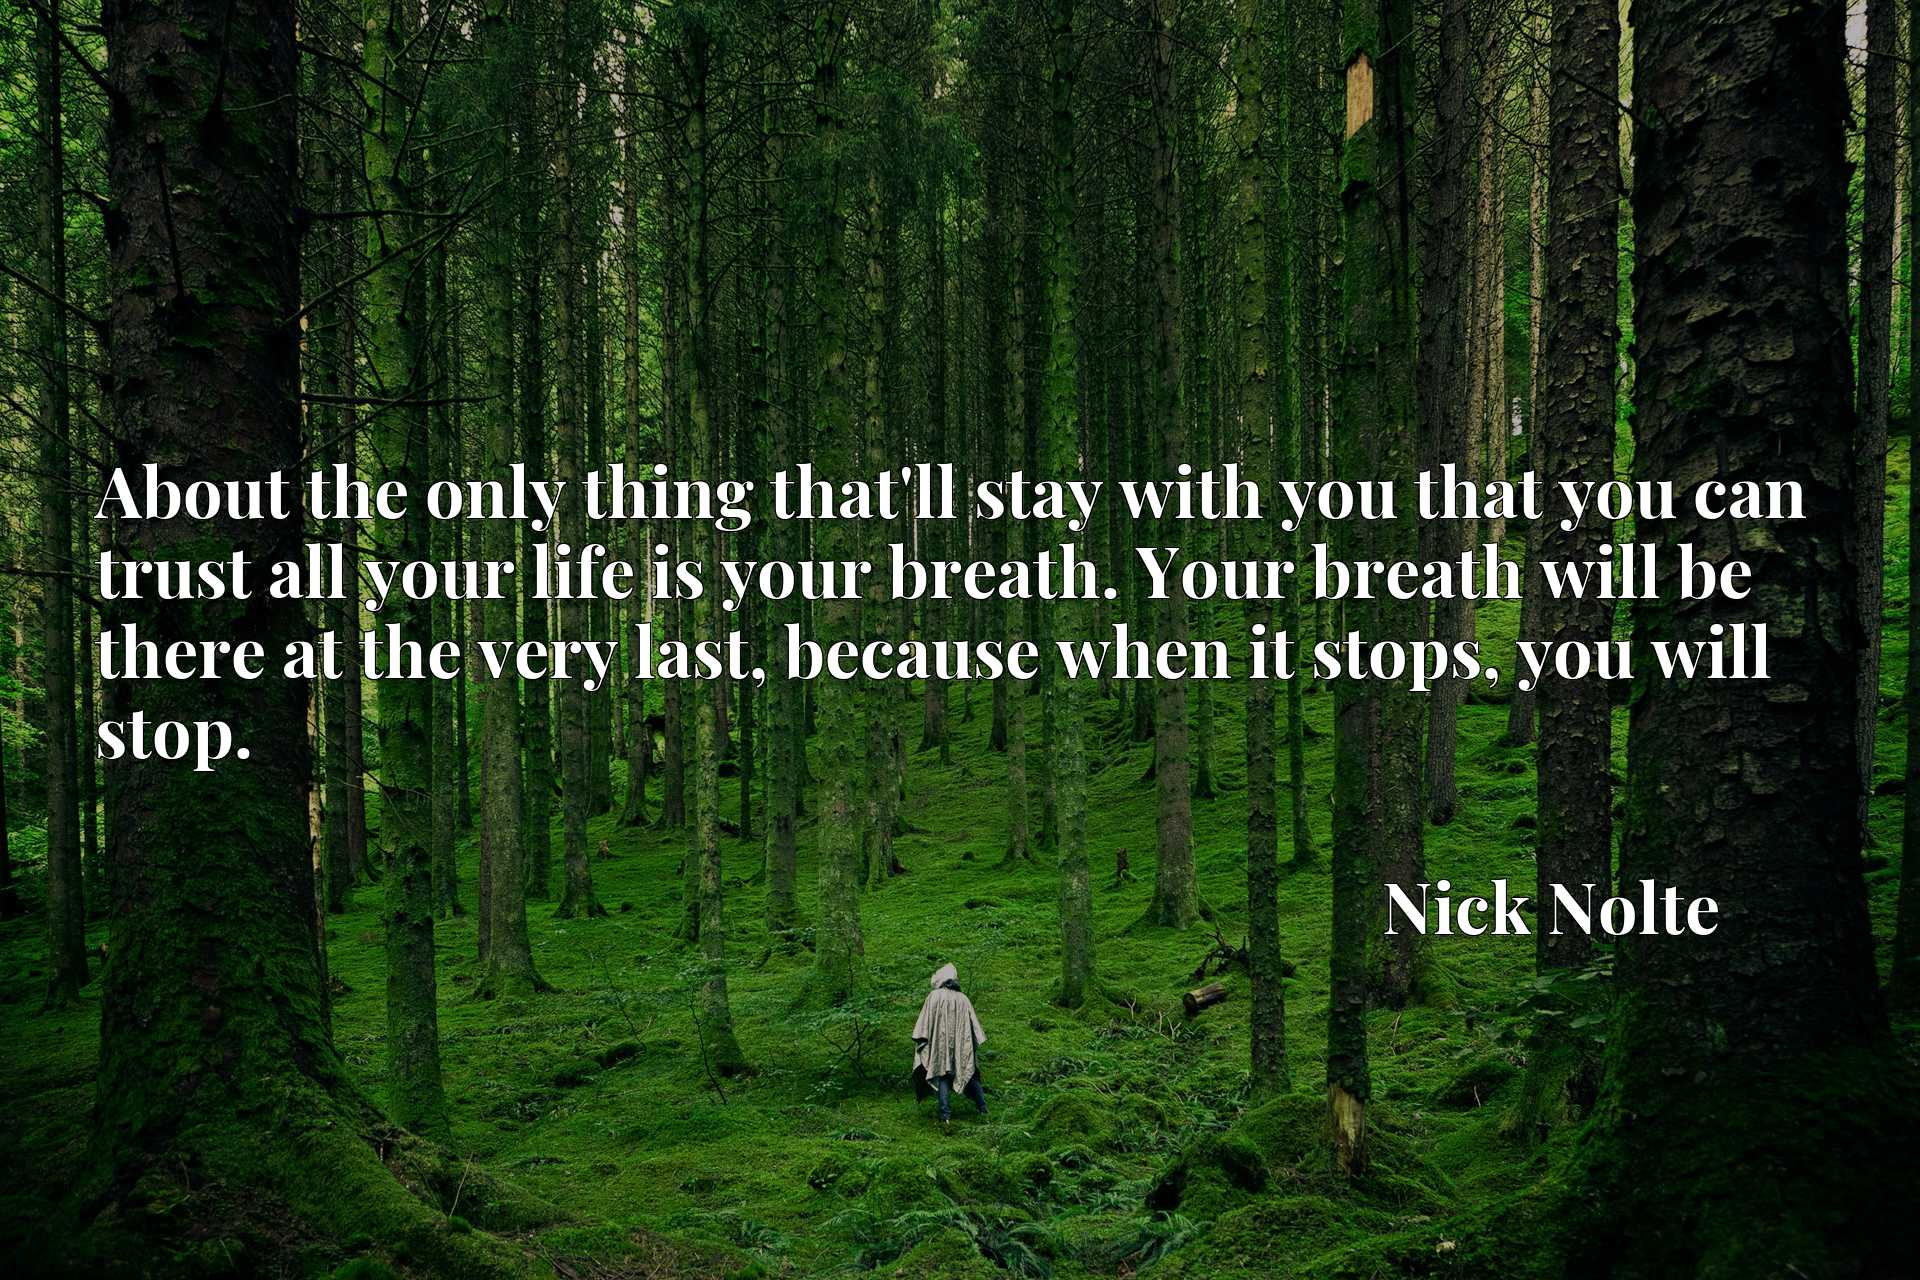 About the only thing that'll stay with you that you can trust all your life is your breath. Your breath will be there at the very last, because when it stops, you will stop.